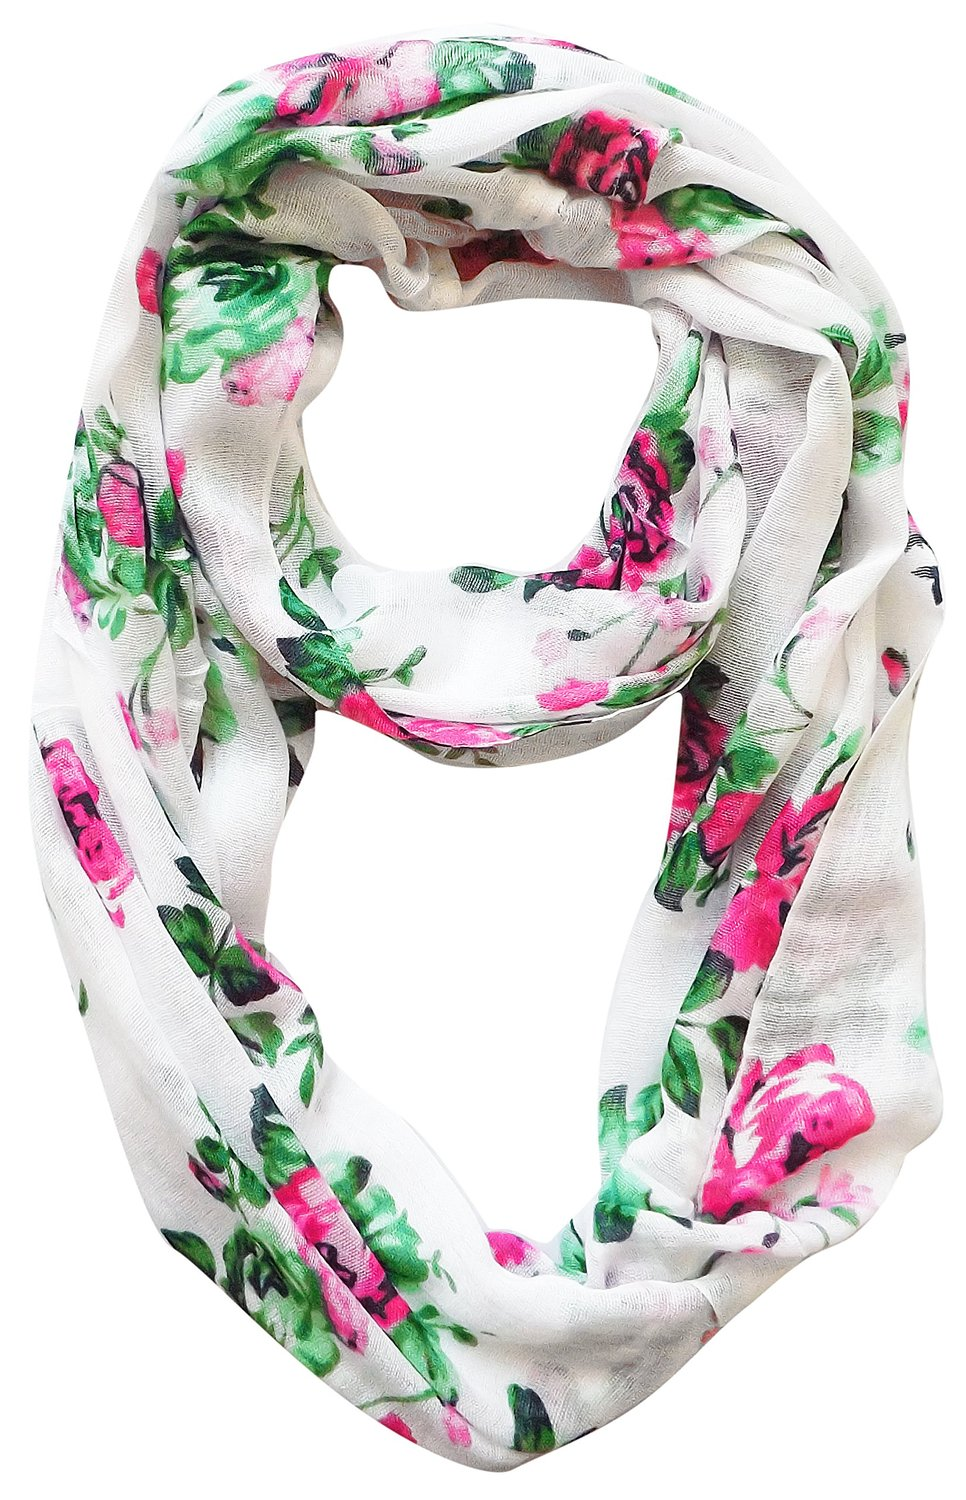 Floral Scarf - Floral Scarf Photos